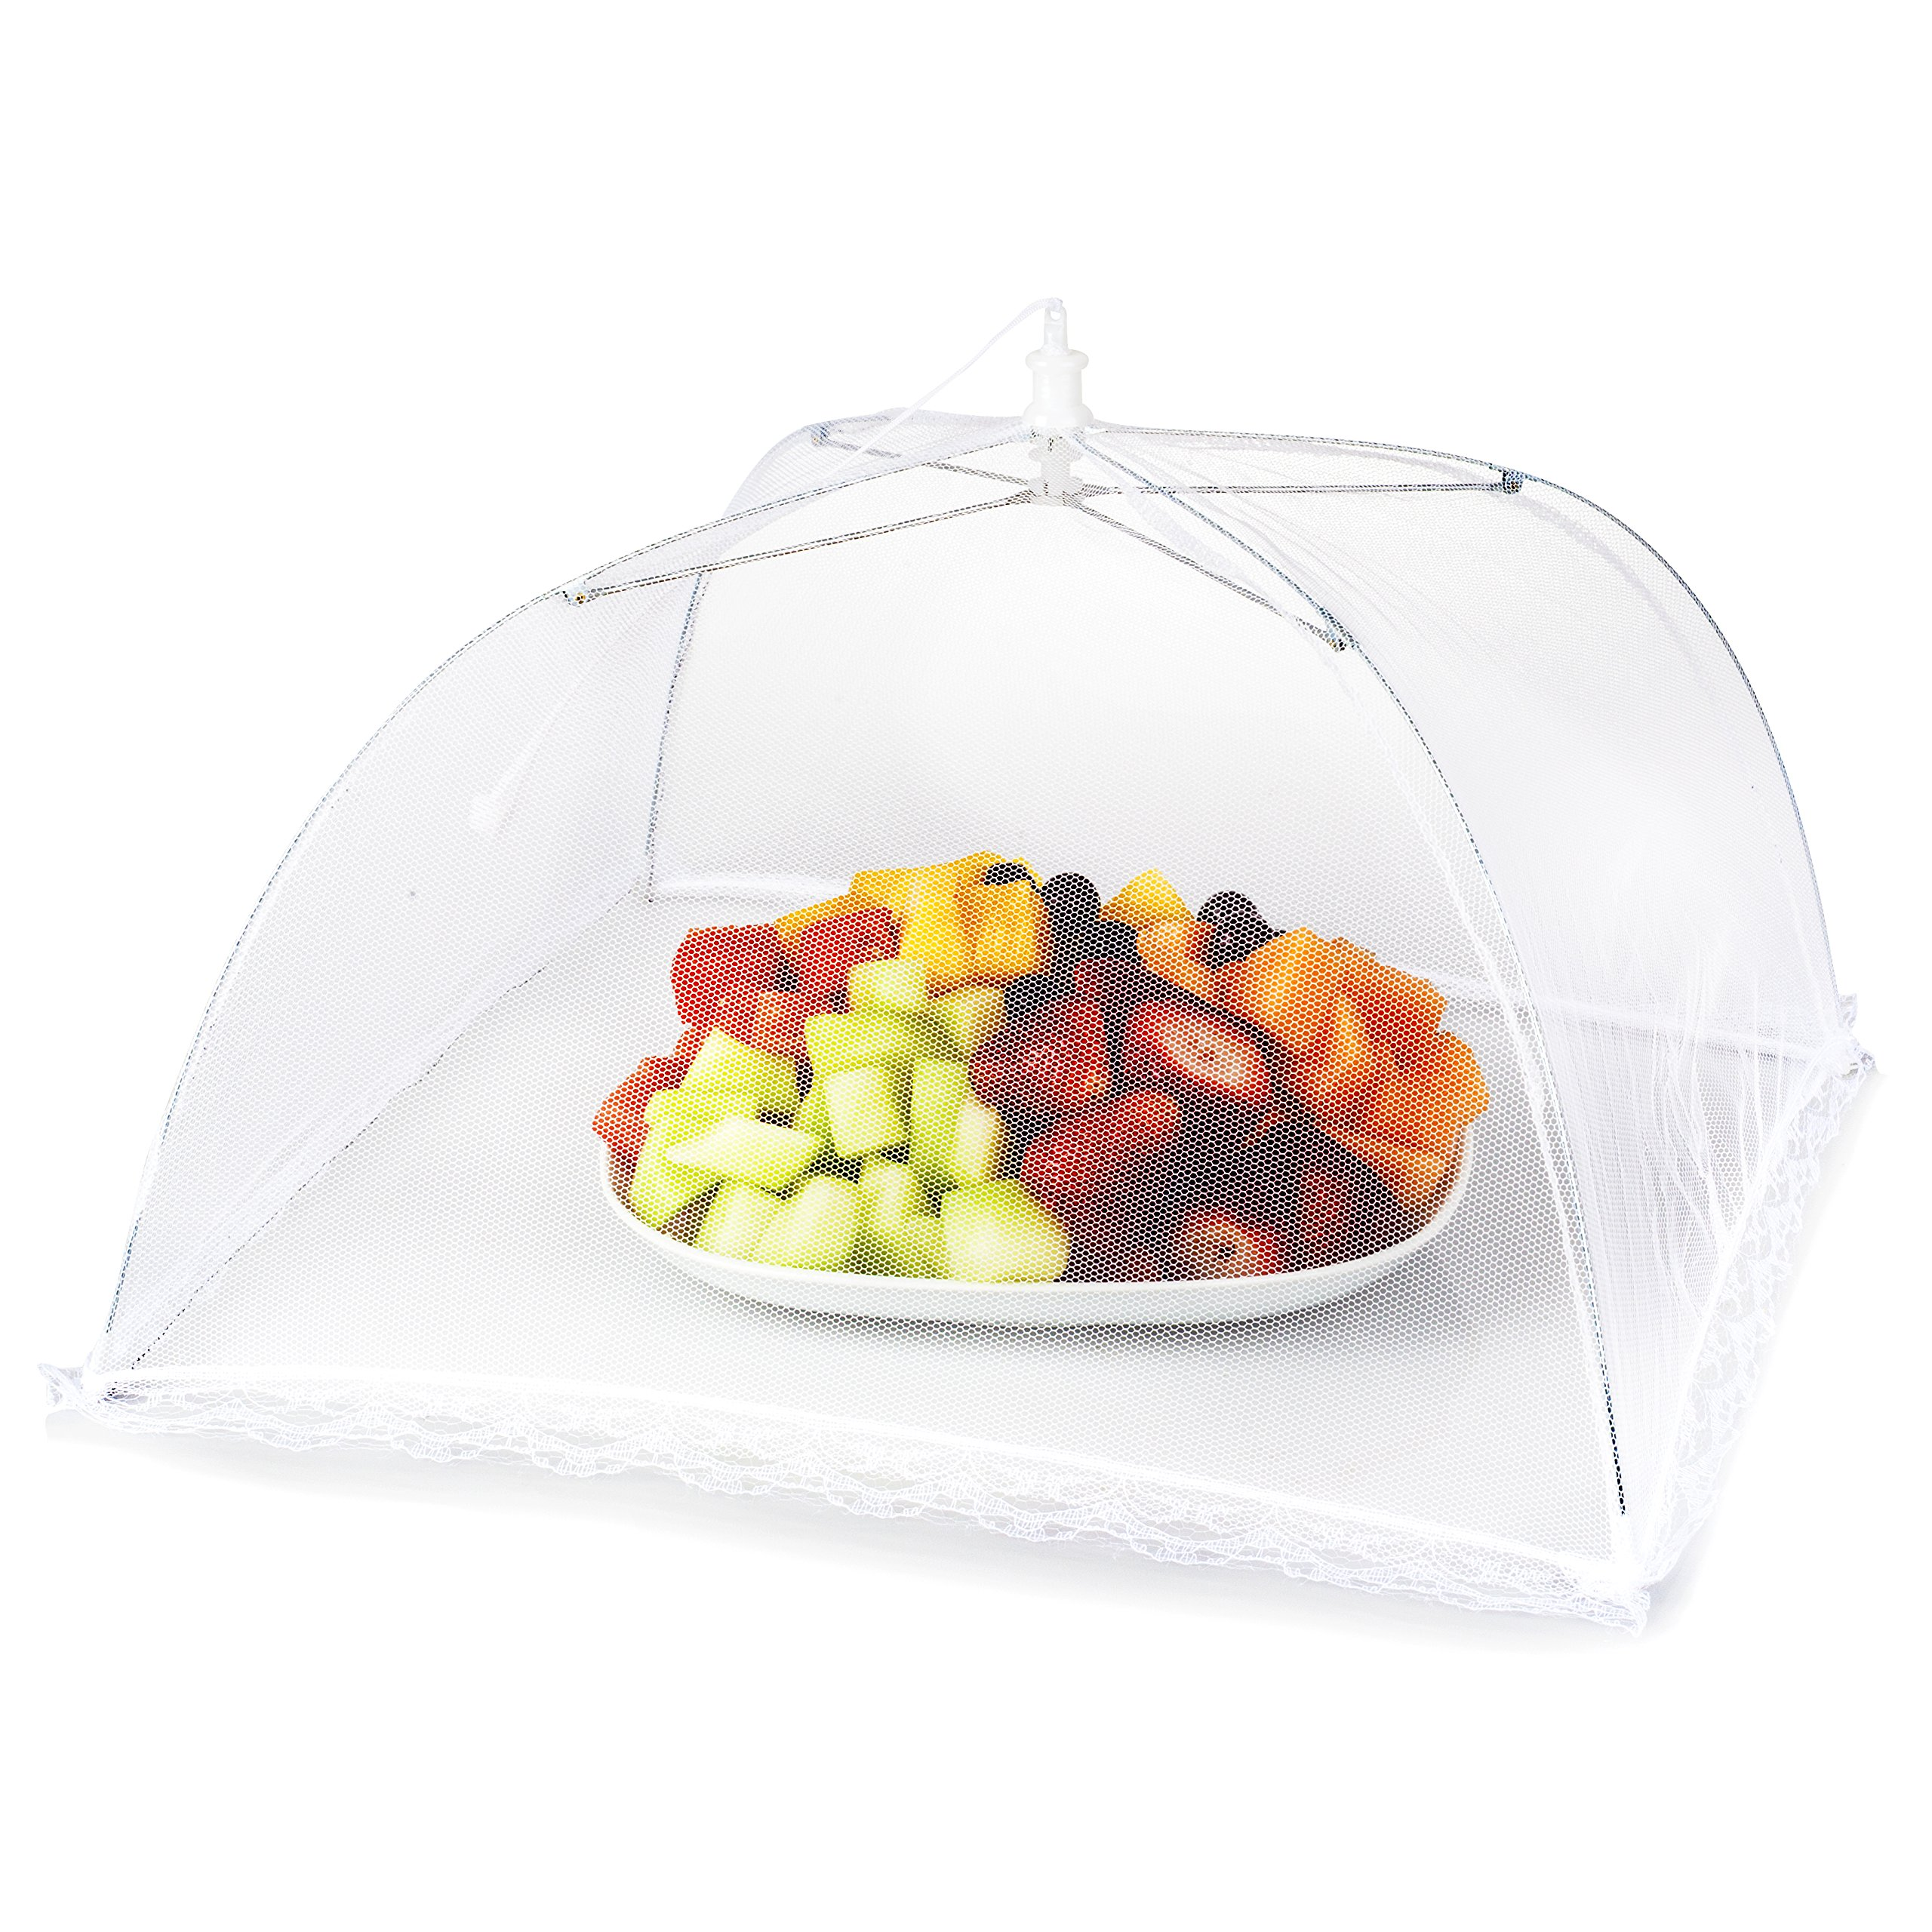 Mesh Picnic Food Tent Covers 6 pack: Collapsible Umbrella Tents for Picnics, BBQ, Camping & Outdoor Cooking; Reusable Pop Up Screen Net & Plate Protector; Shields Food Plates & Glasses From Flies, Bug by Oakmont Trading Store